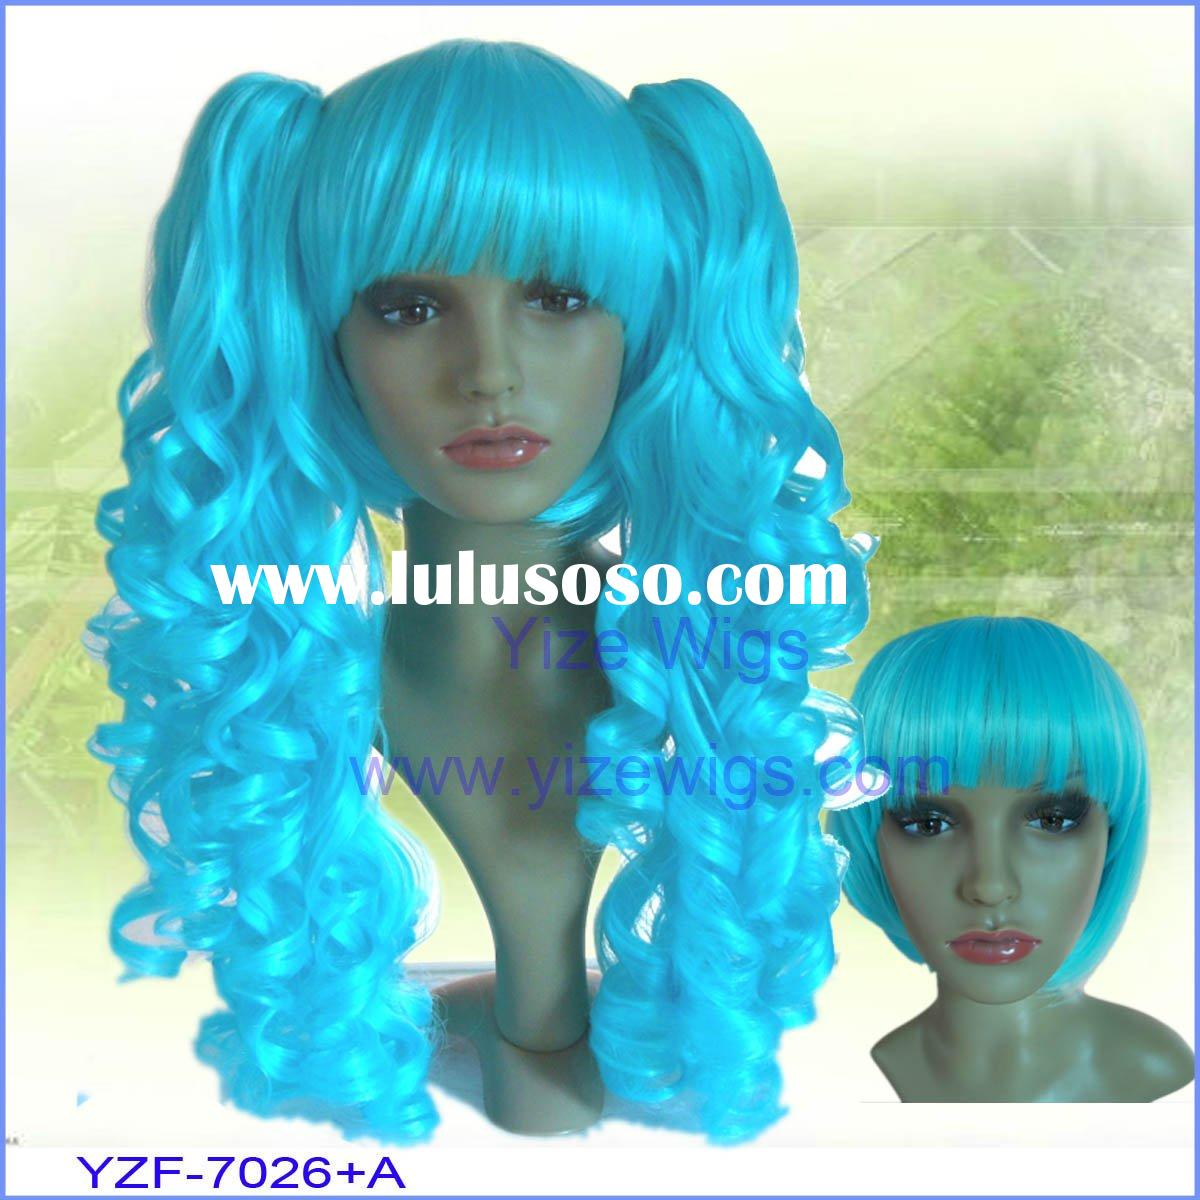 hair product Cosplay wig with clip on pony tails YZF-7026